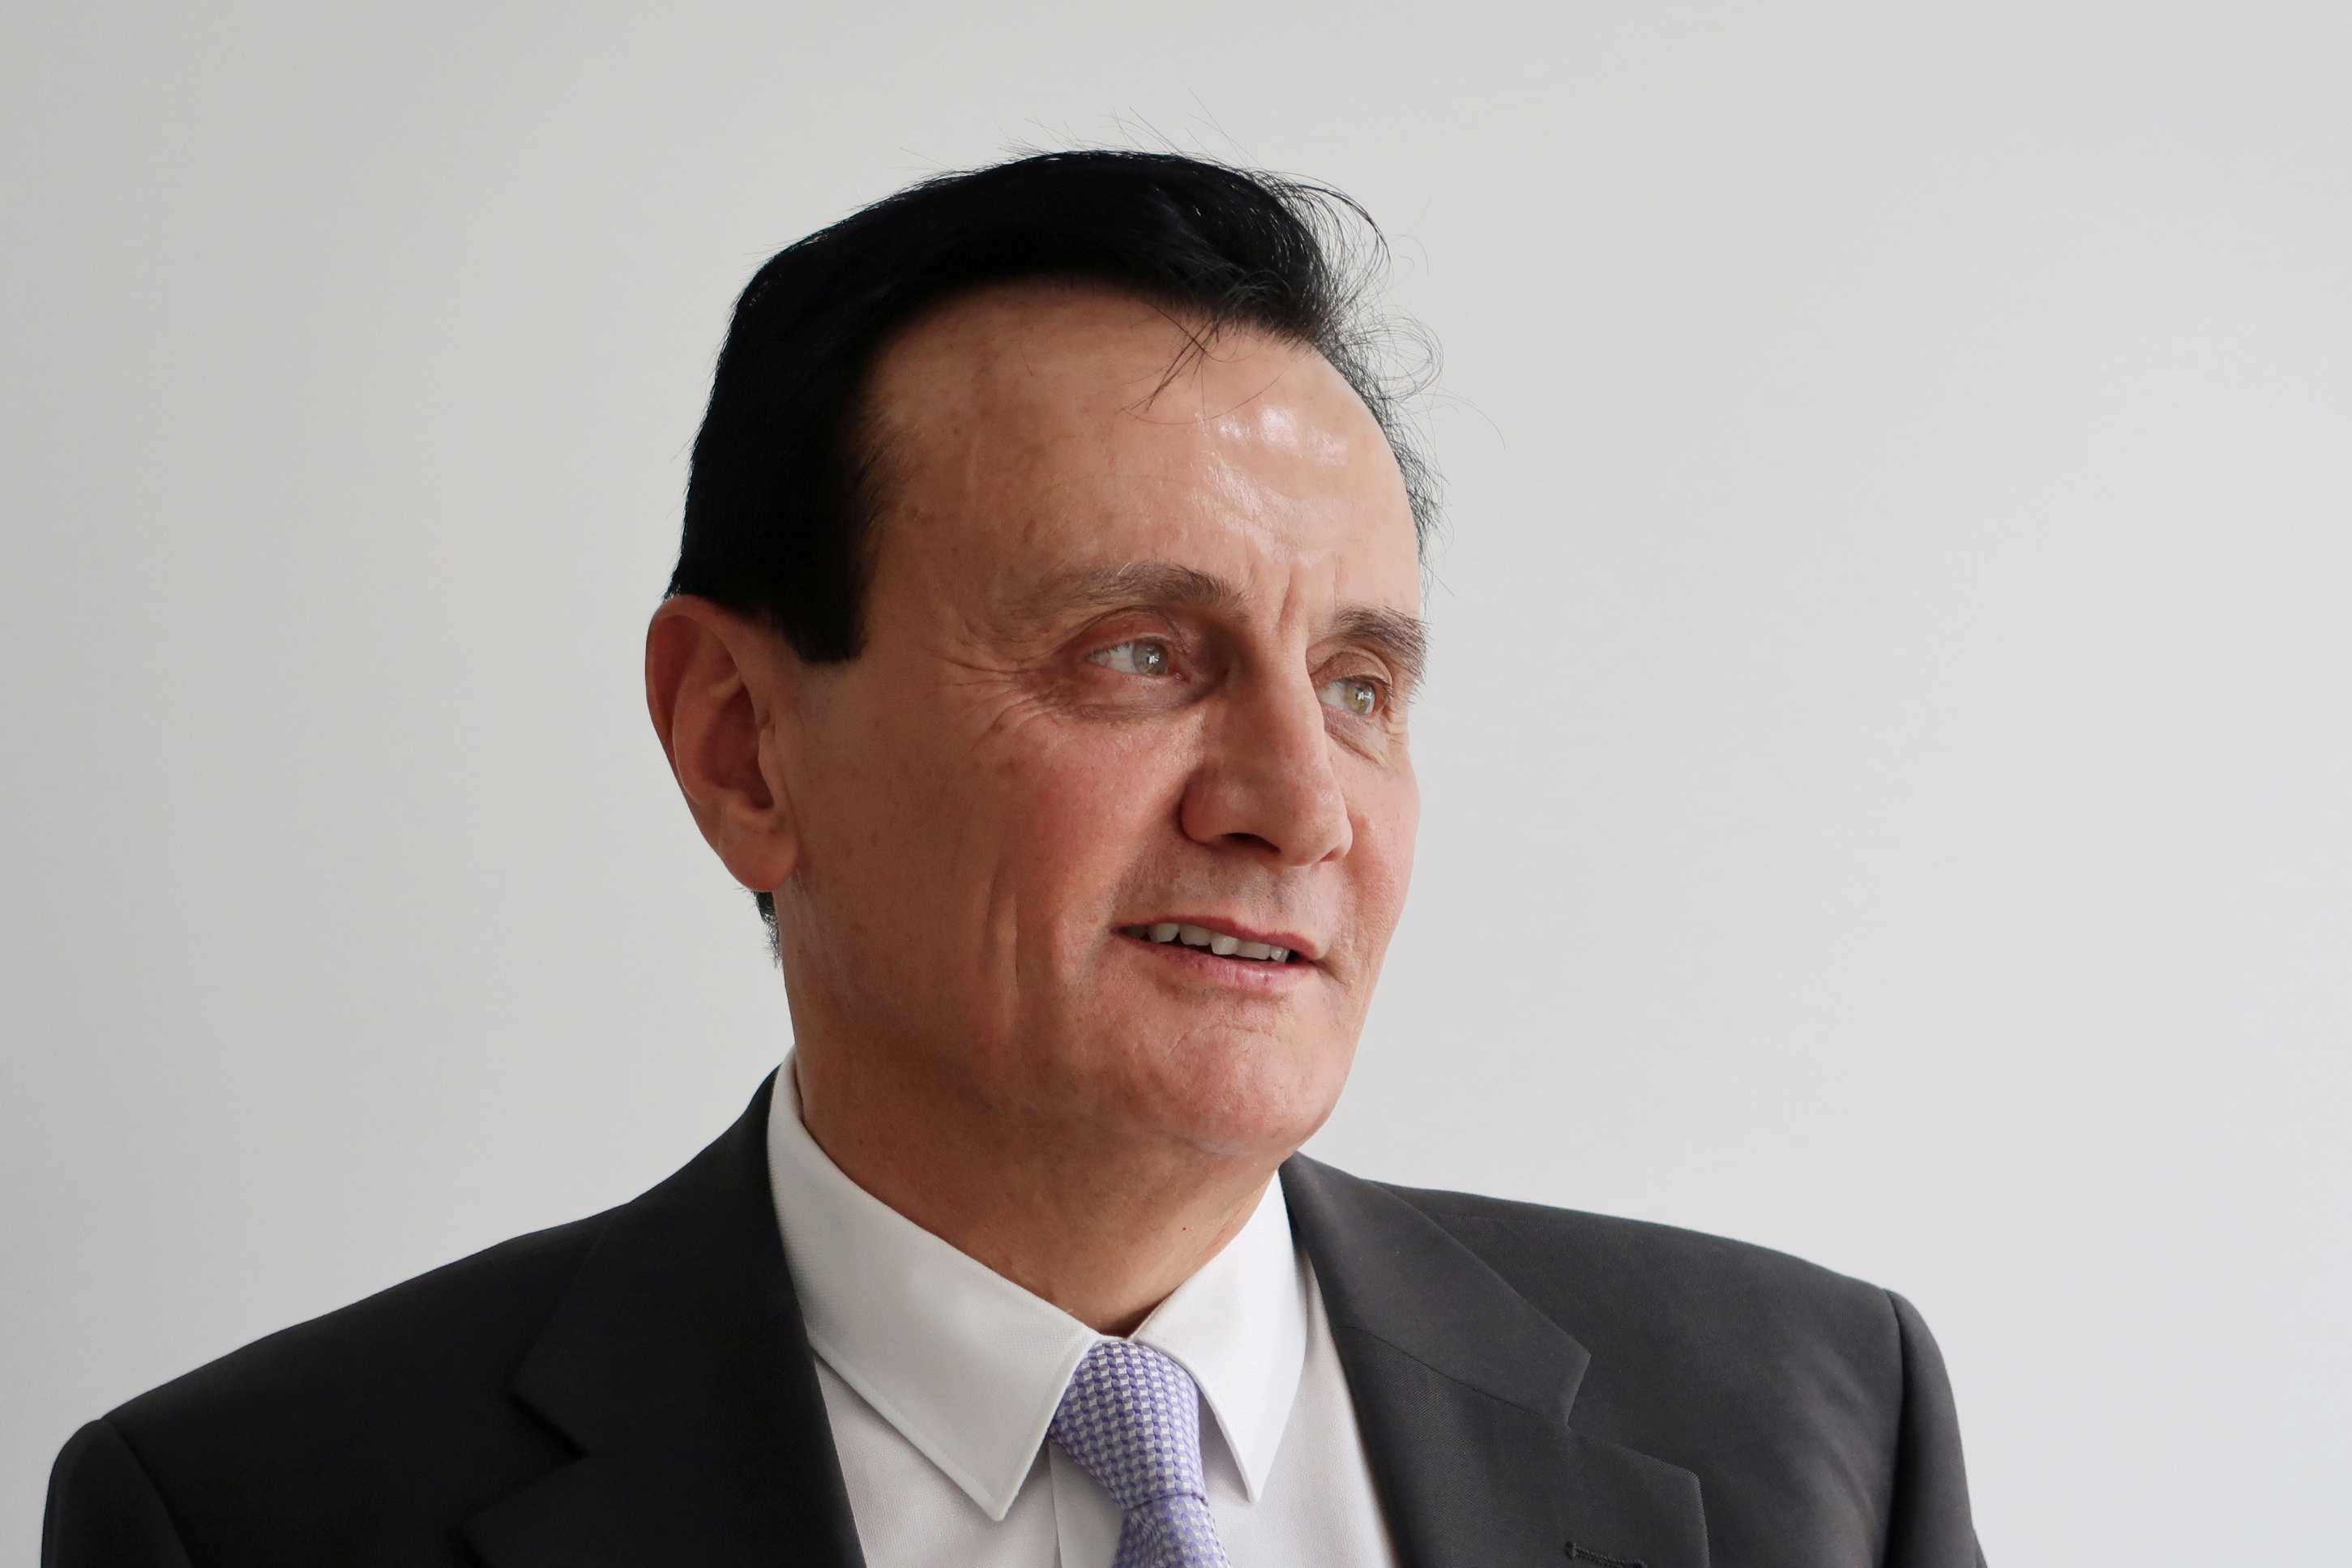 Pascal Soriot, chief executive officer of pharmaceutical company AstraZeneca, attends an interview with Reuters in Shanghai, China November 4, 2019.  REUTERS/Brenda Goh/File Photo